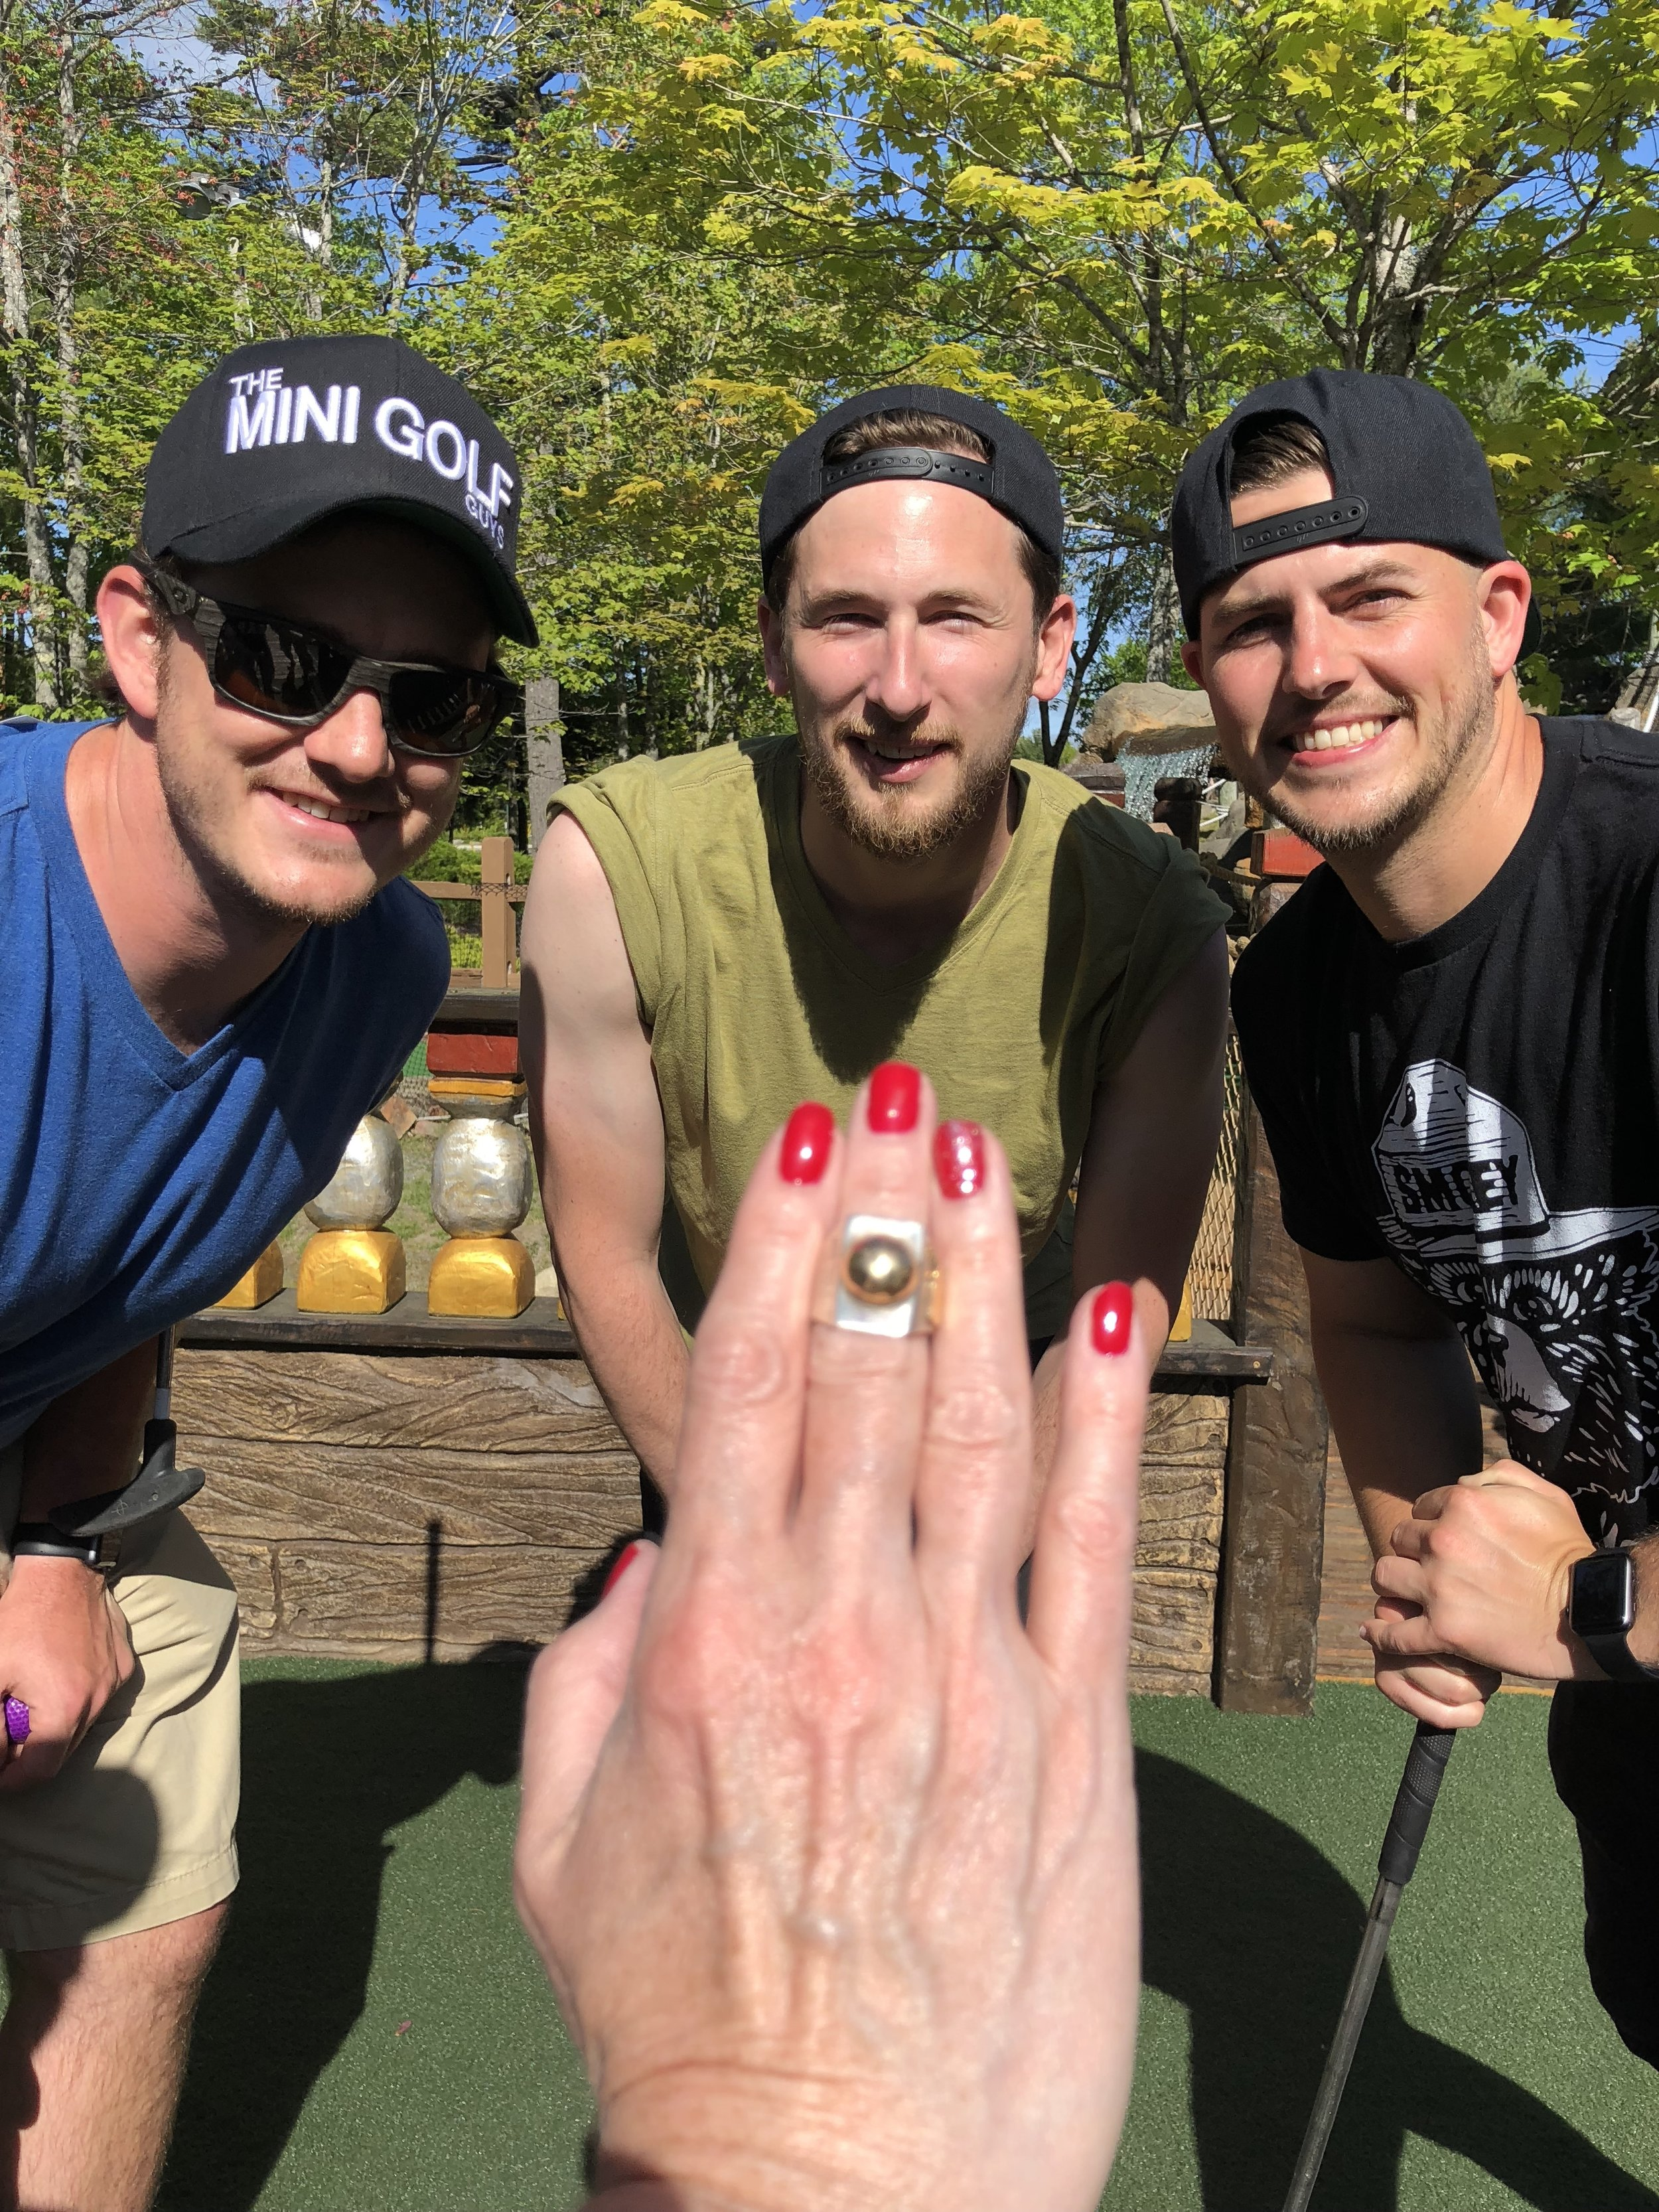 We showed off the ring to our #NewMiniFriend Lisa and her golfing partner Tobey while at Pirate's Cove on Mount Desert Island tonight.